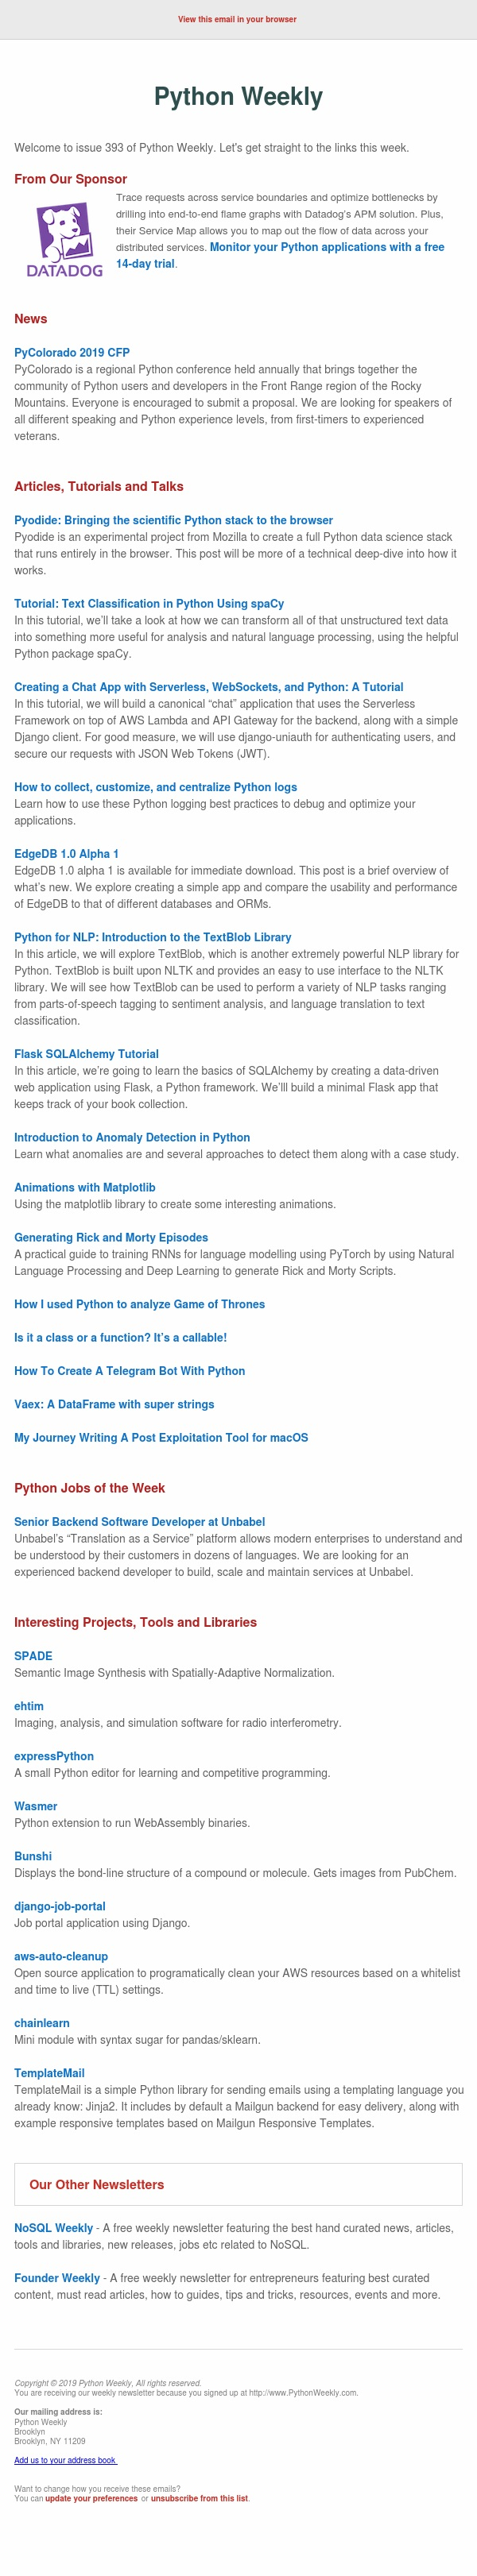 Python Weekly - Issue 393